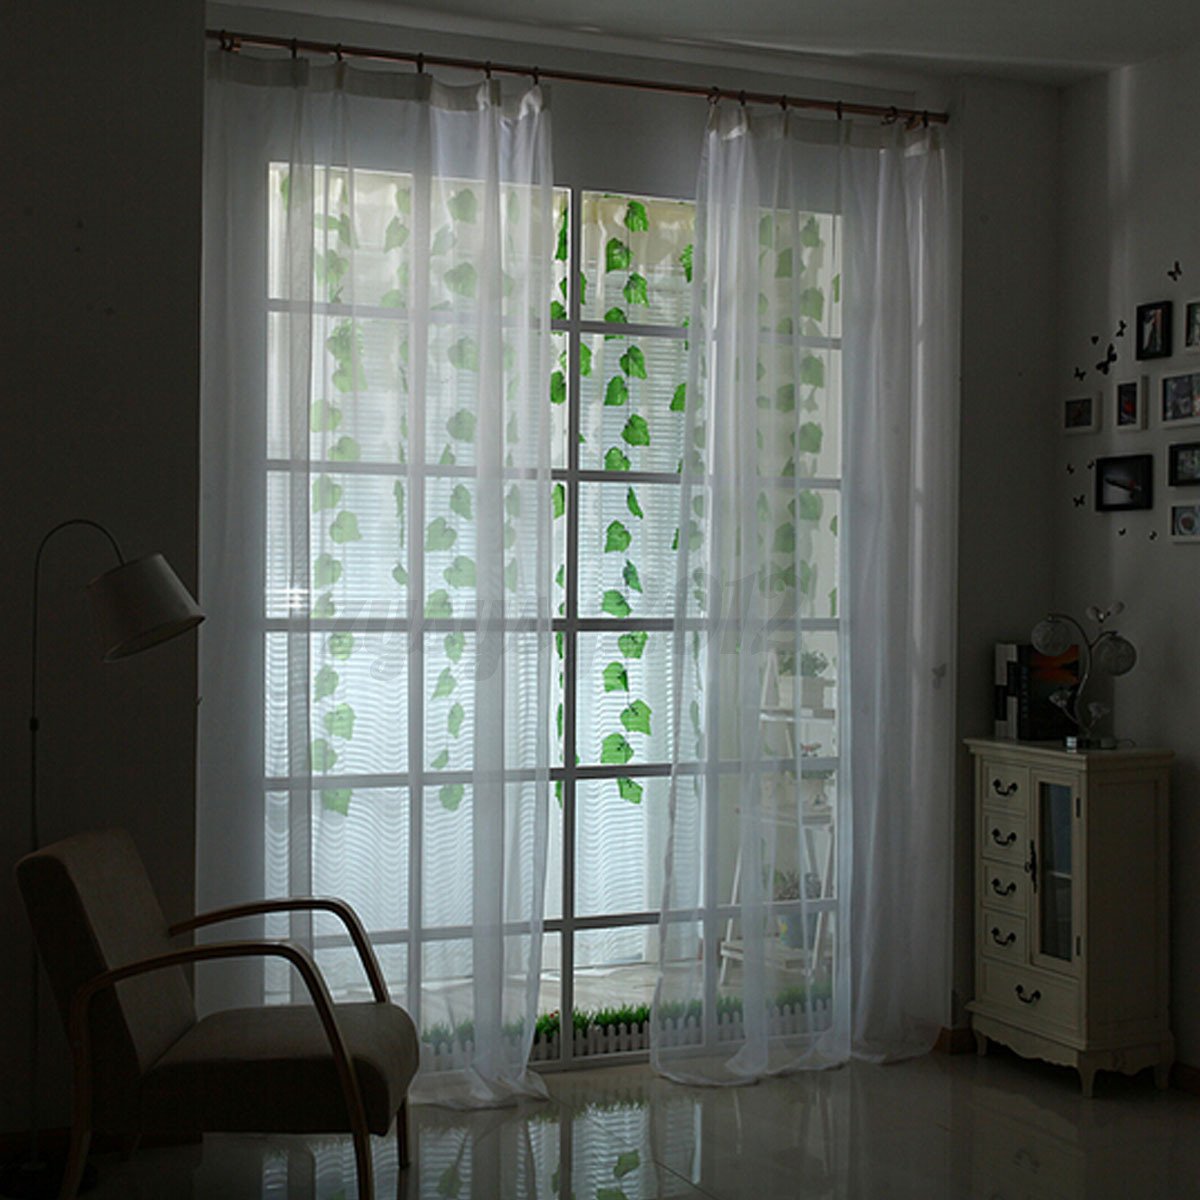 rideau fen tre porte cantonni re voilage frange chambre curtain d co 100x200cm ebay. Black Bedroom Furniture Sets. Home Design Ideas